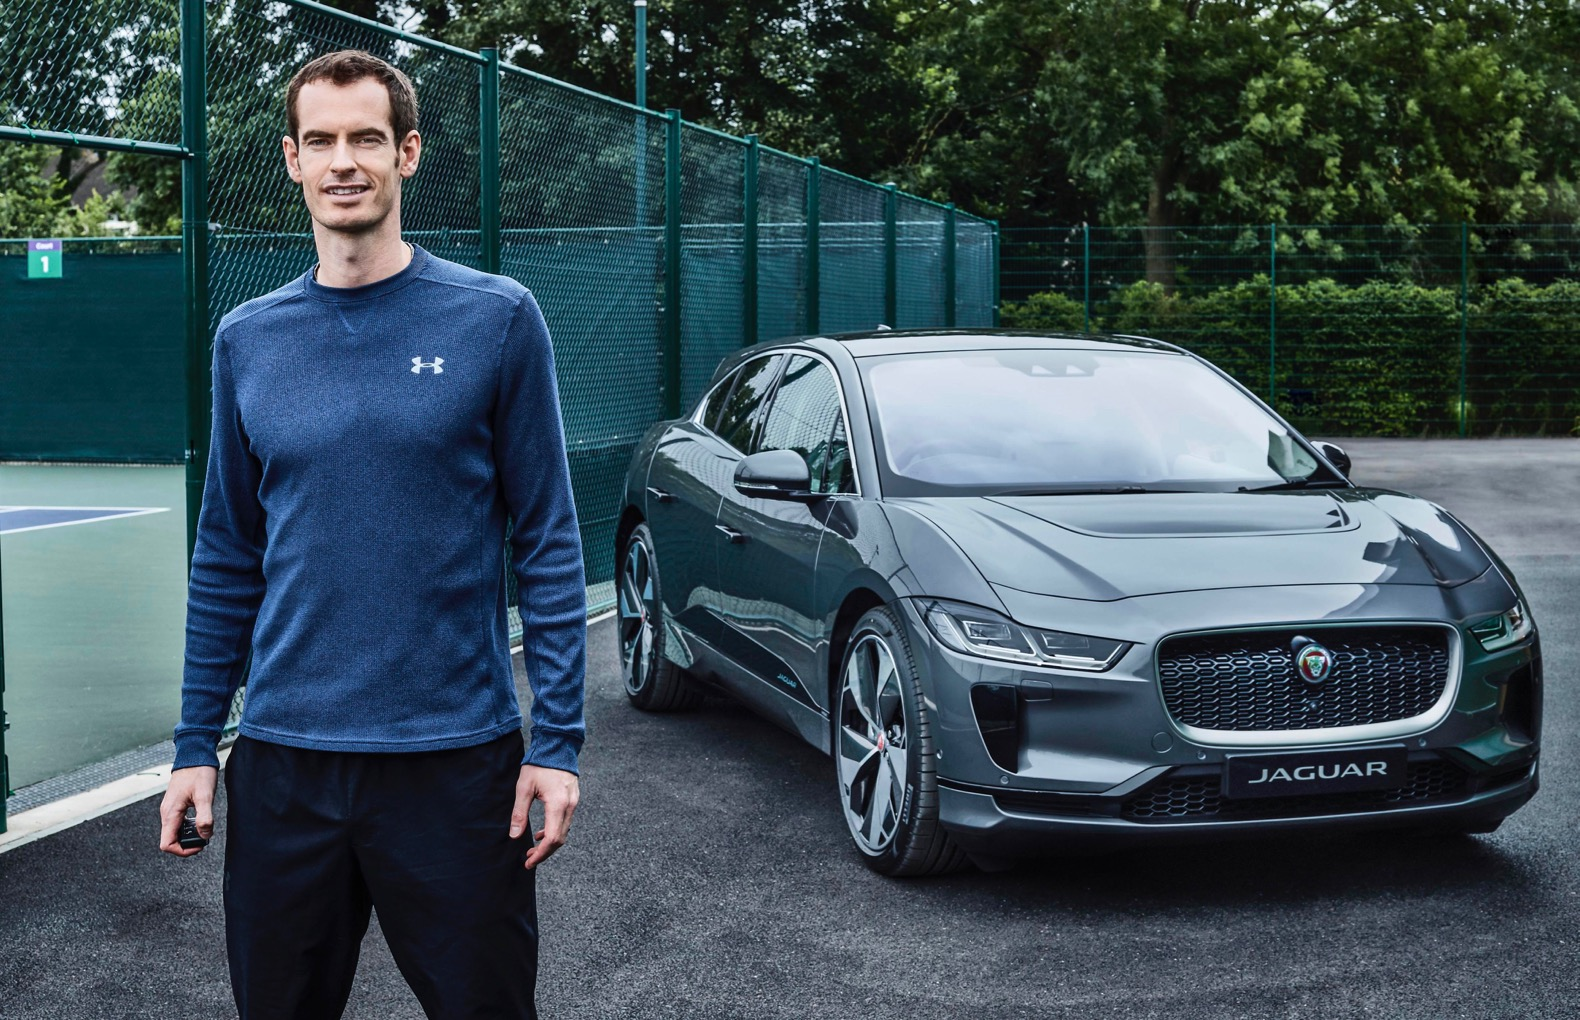 Luxury cars endorsed advertised promoted driven by tennis male female players sports sponsors list Andy Murray Jaguar